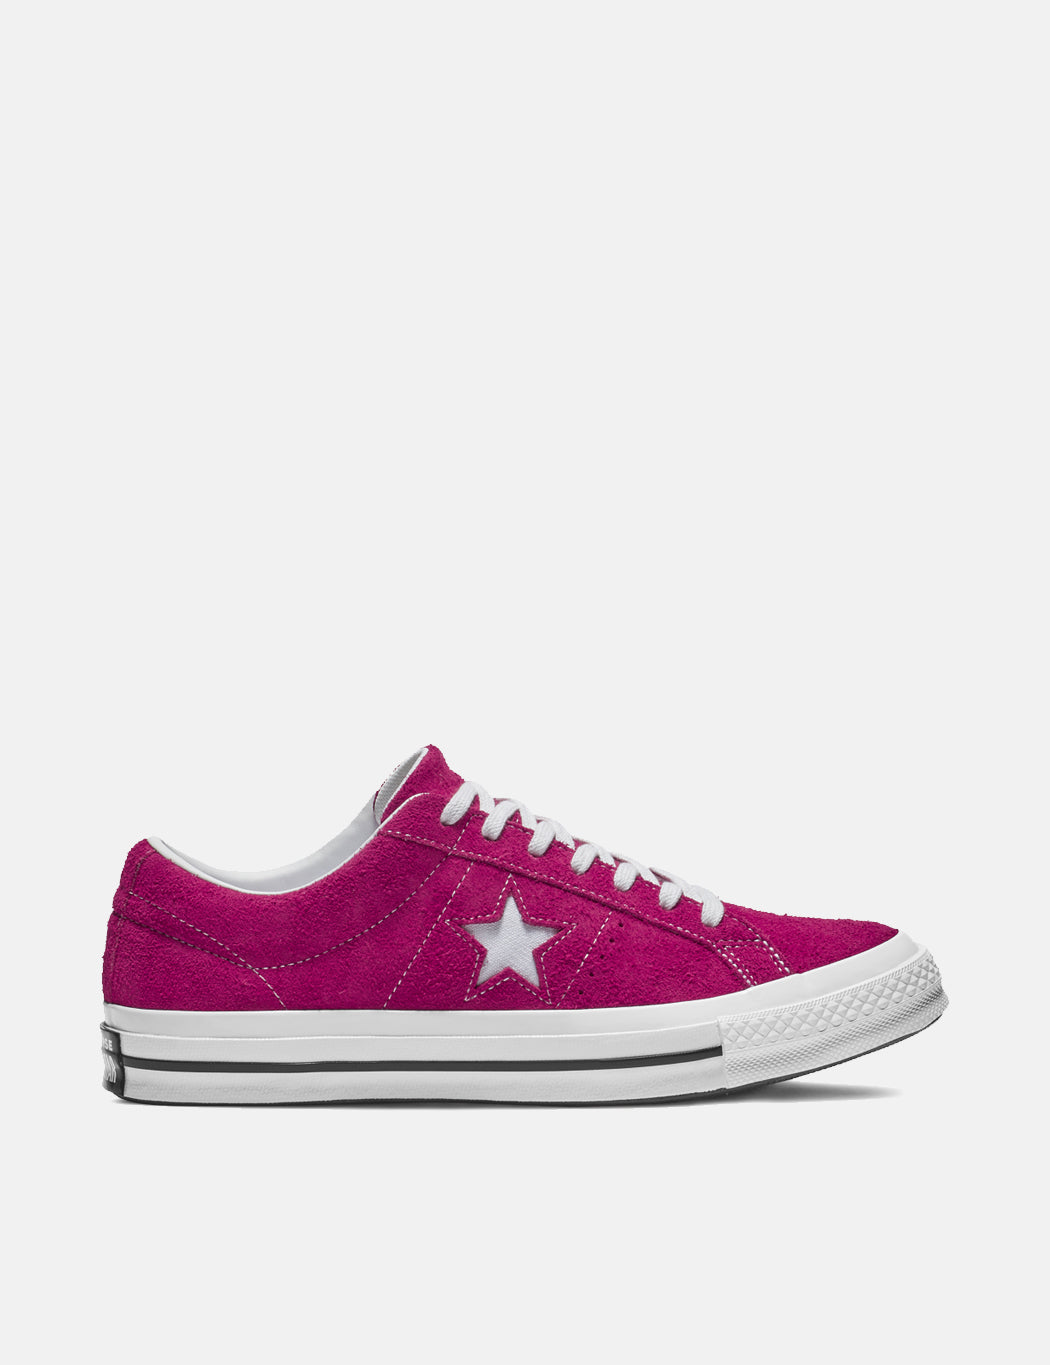 Converse One Star Ox Low Suede (162575C) - Pink Pop/White